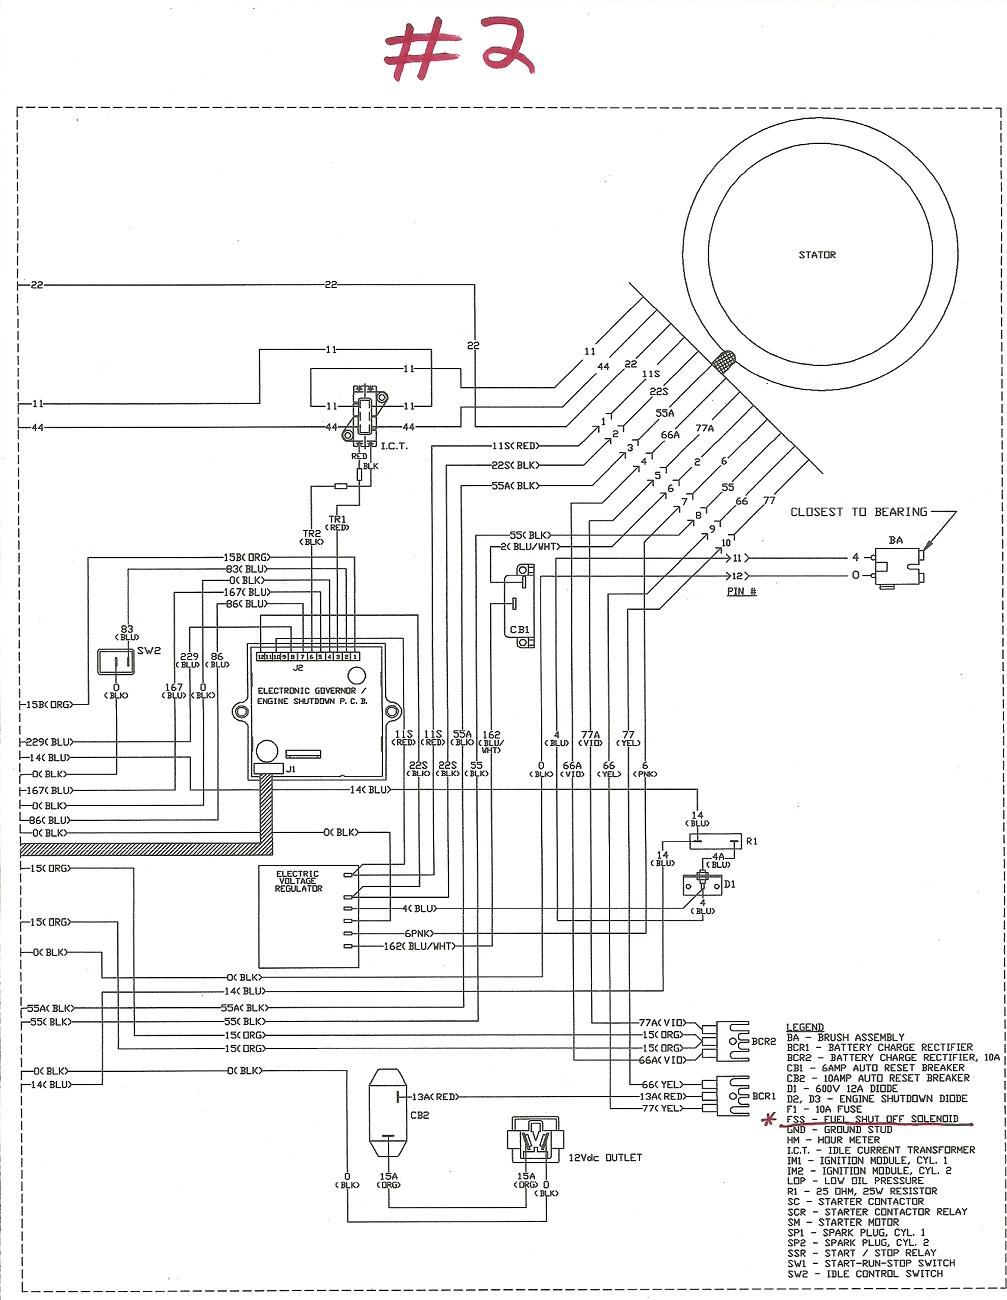 Generac Guardian 8kw Wiring Diagram